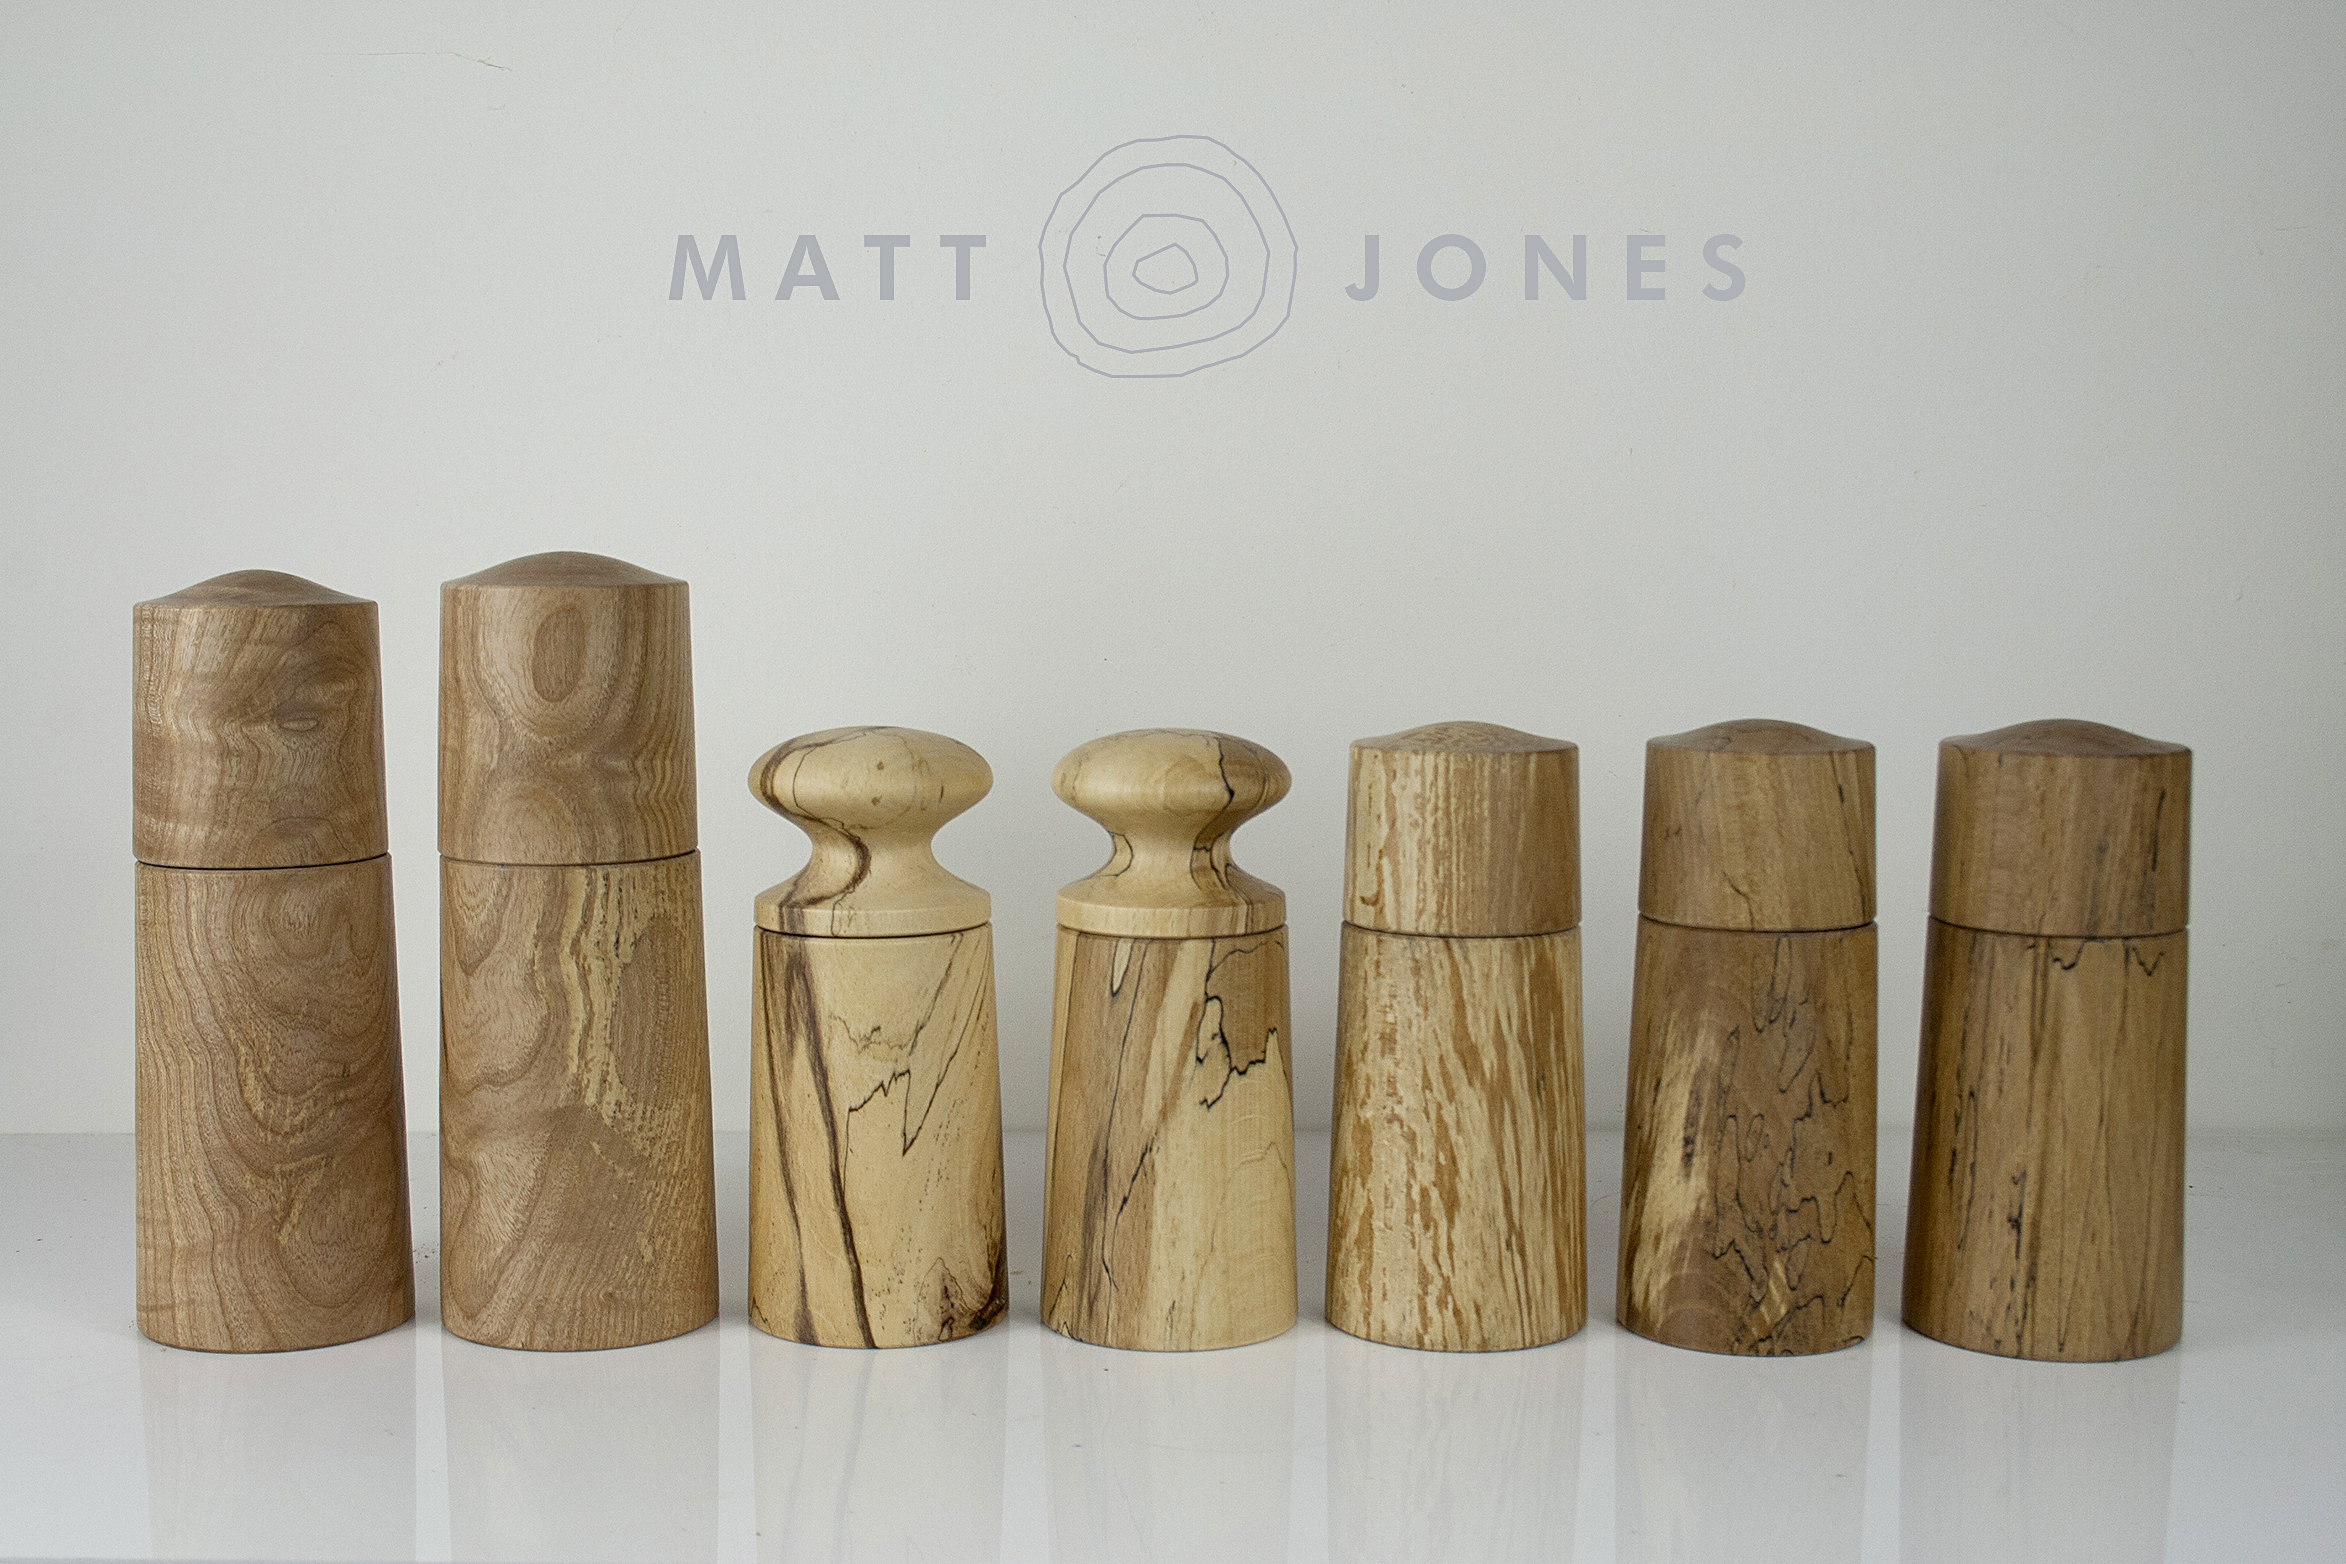 Handmade Wooden Salt Mills And Pepper Grinders Made In Ireland